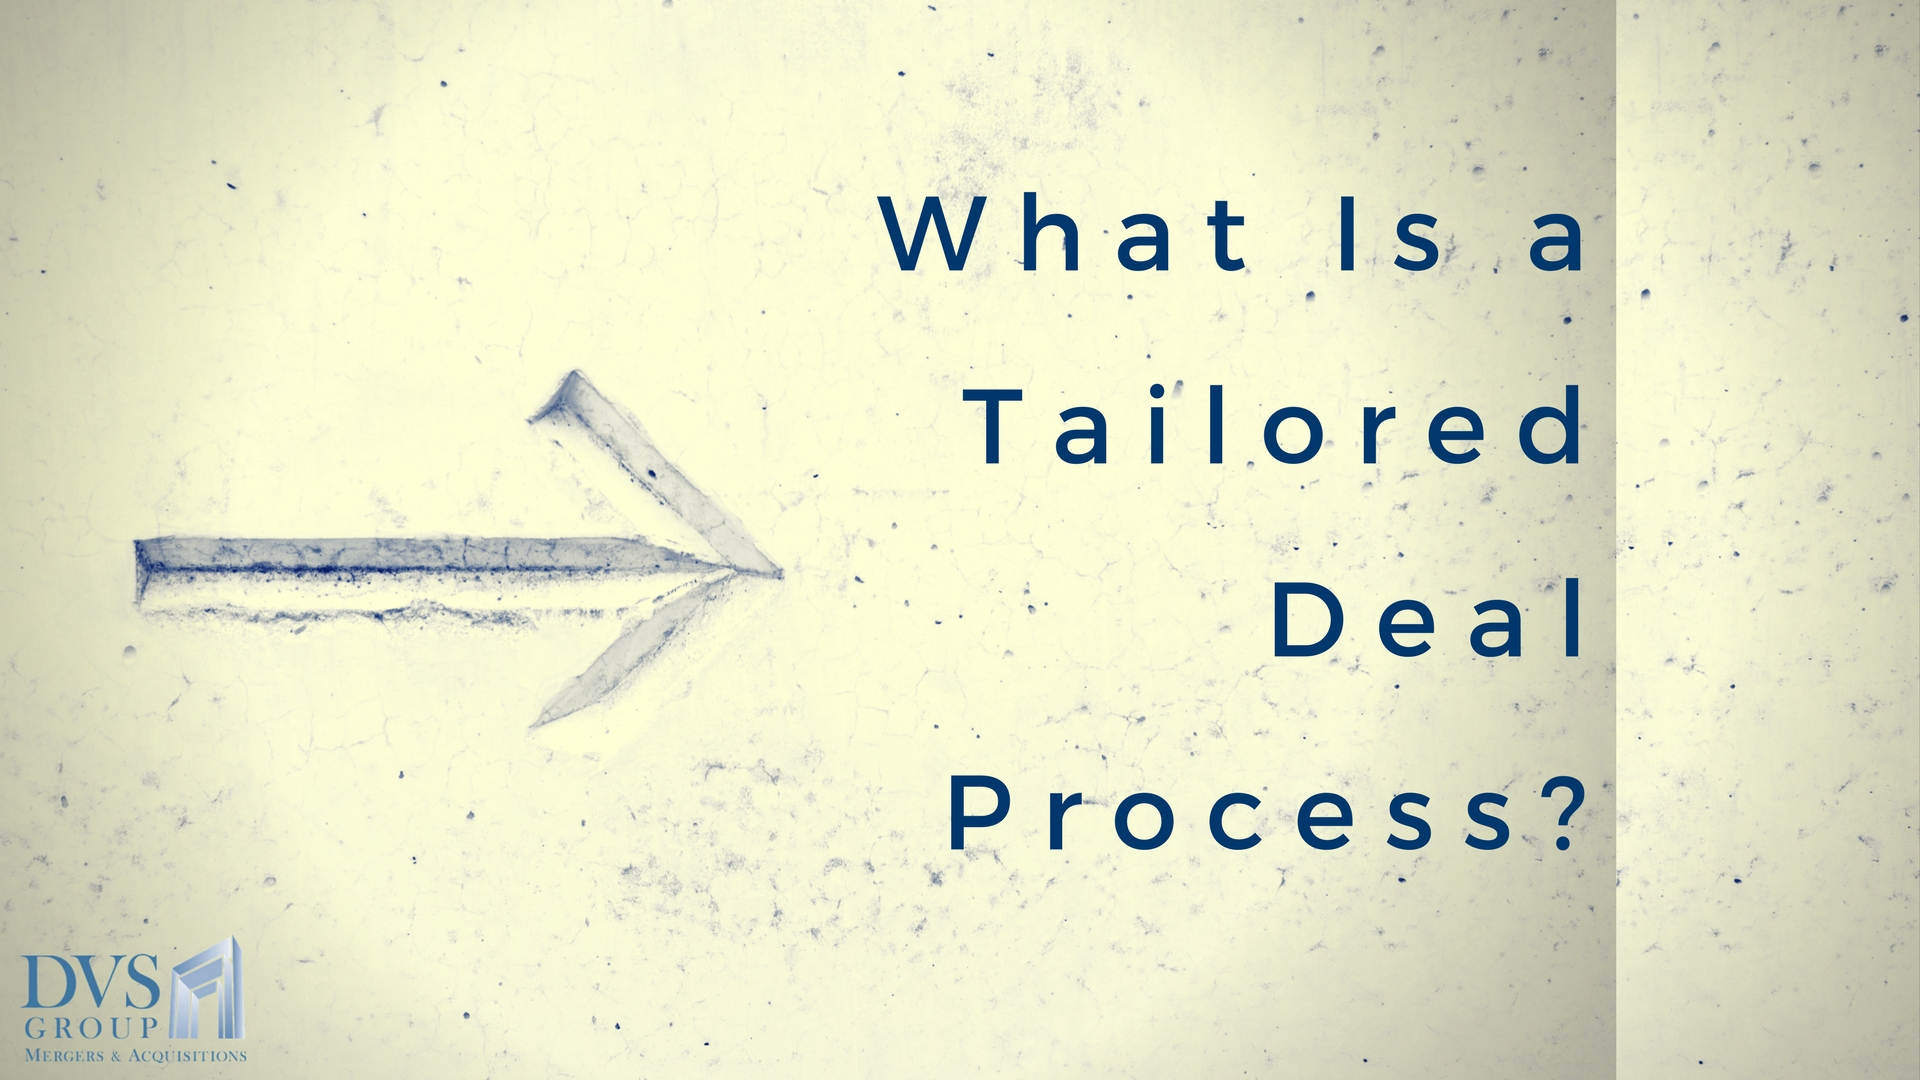 What Is a Tailored Deal Process